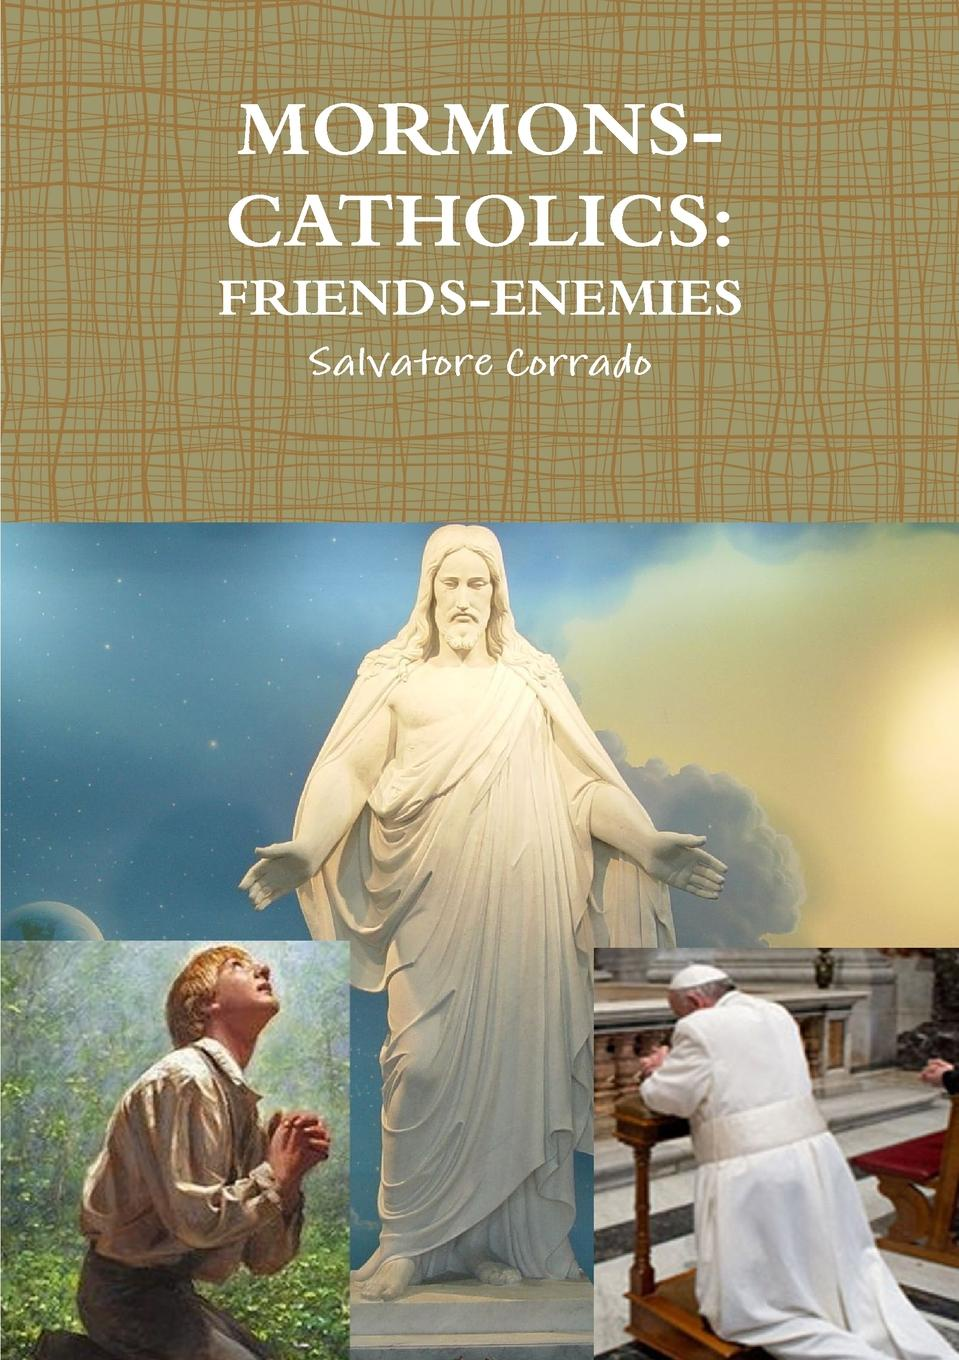 Salvatore Corrado MORMONS-CATHOLICS. FRIENDS-ENEMIES the eye of the world the wheel of time book 2 chinese edition 400 page